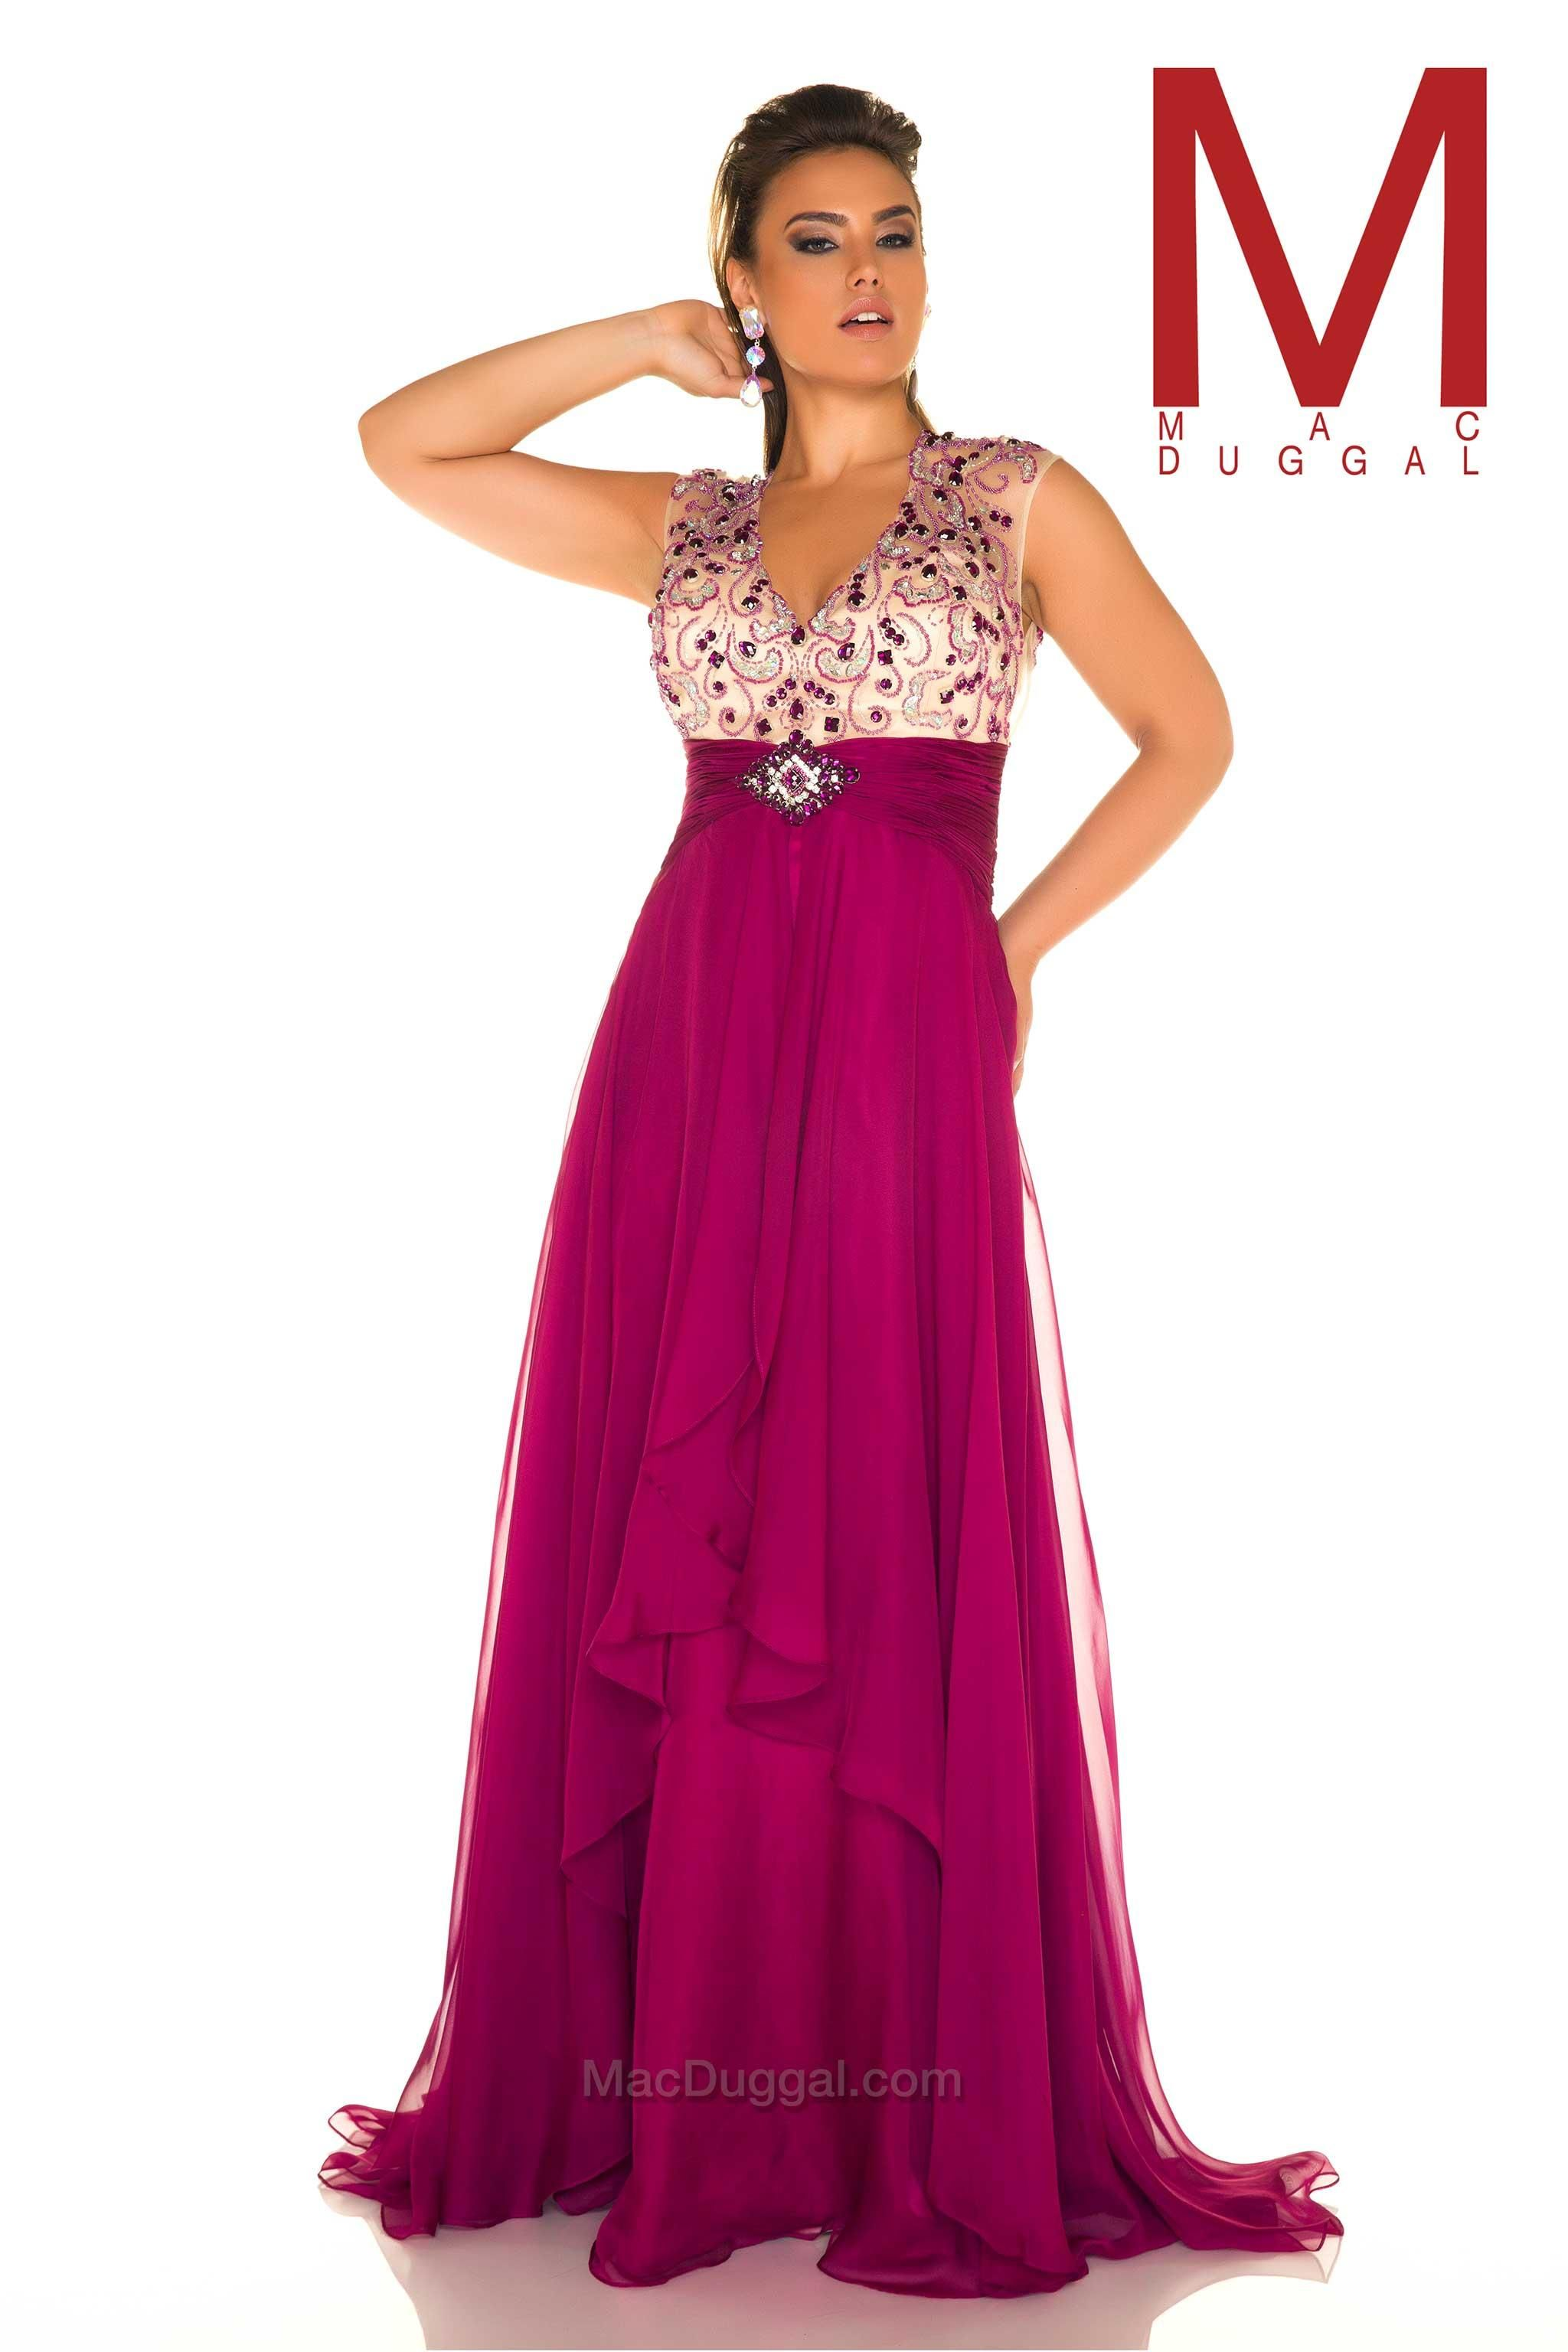 F mac duggal roupa pinterest prom overlay and compliments